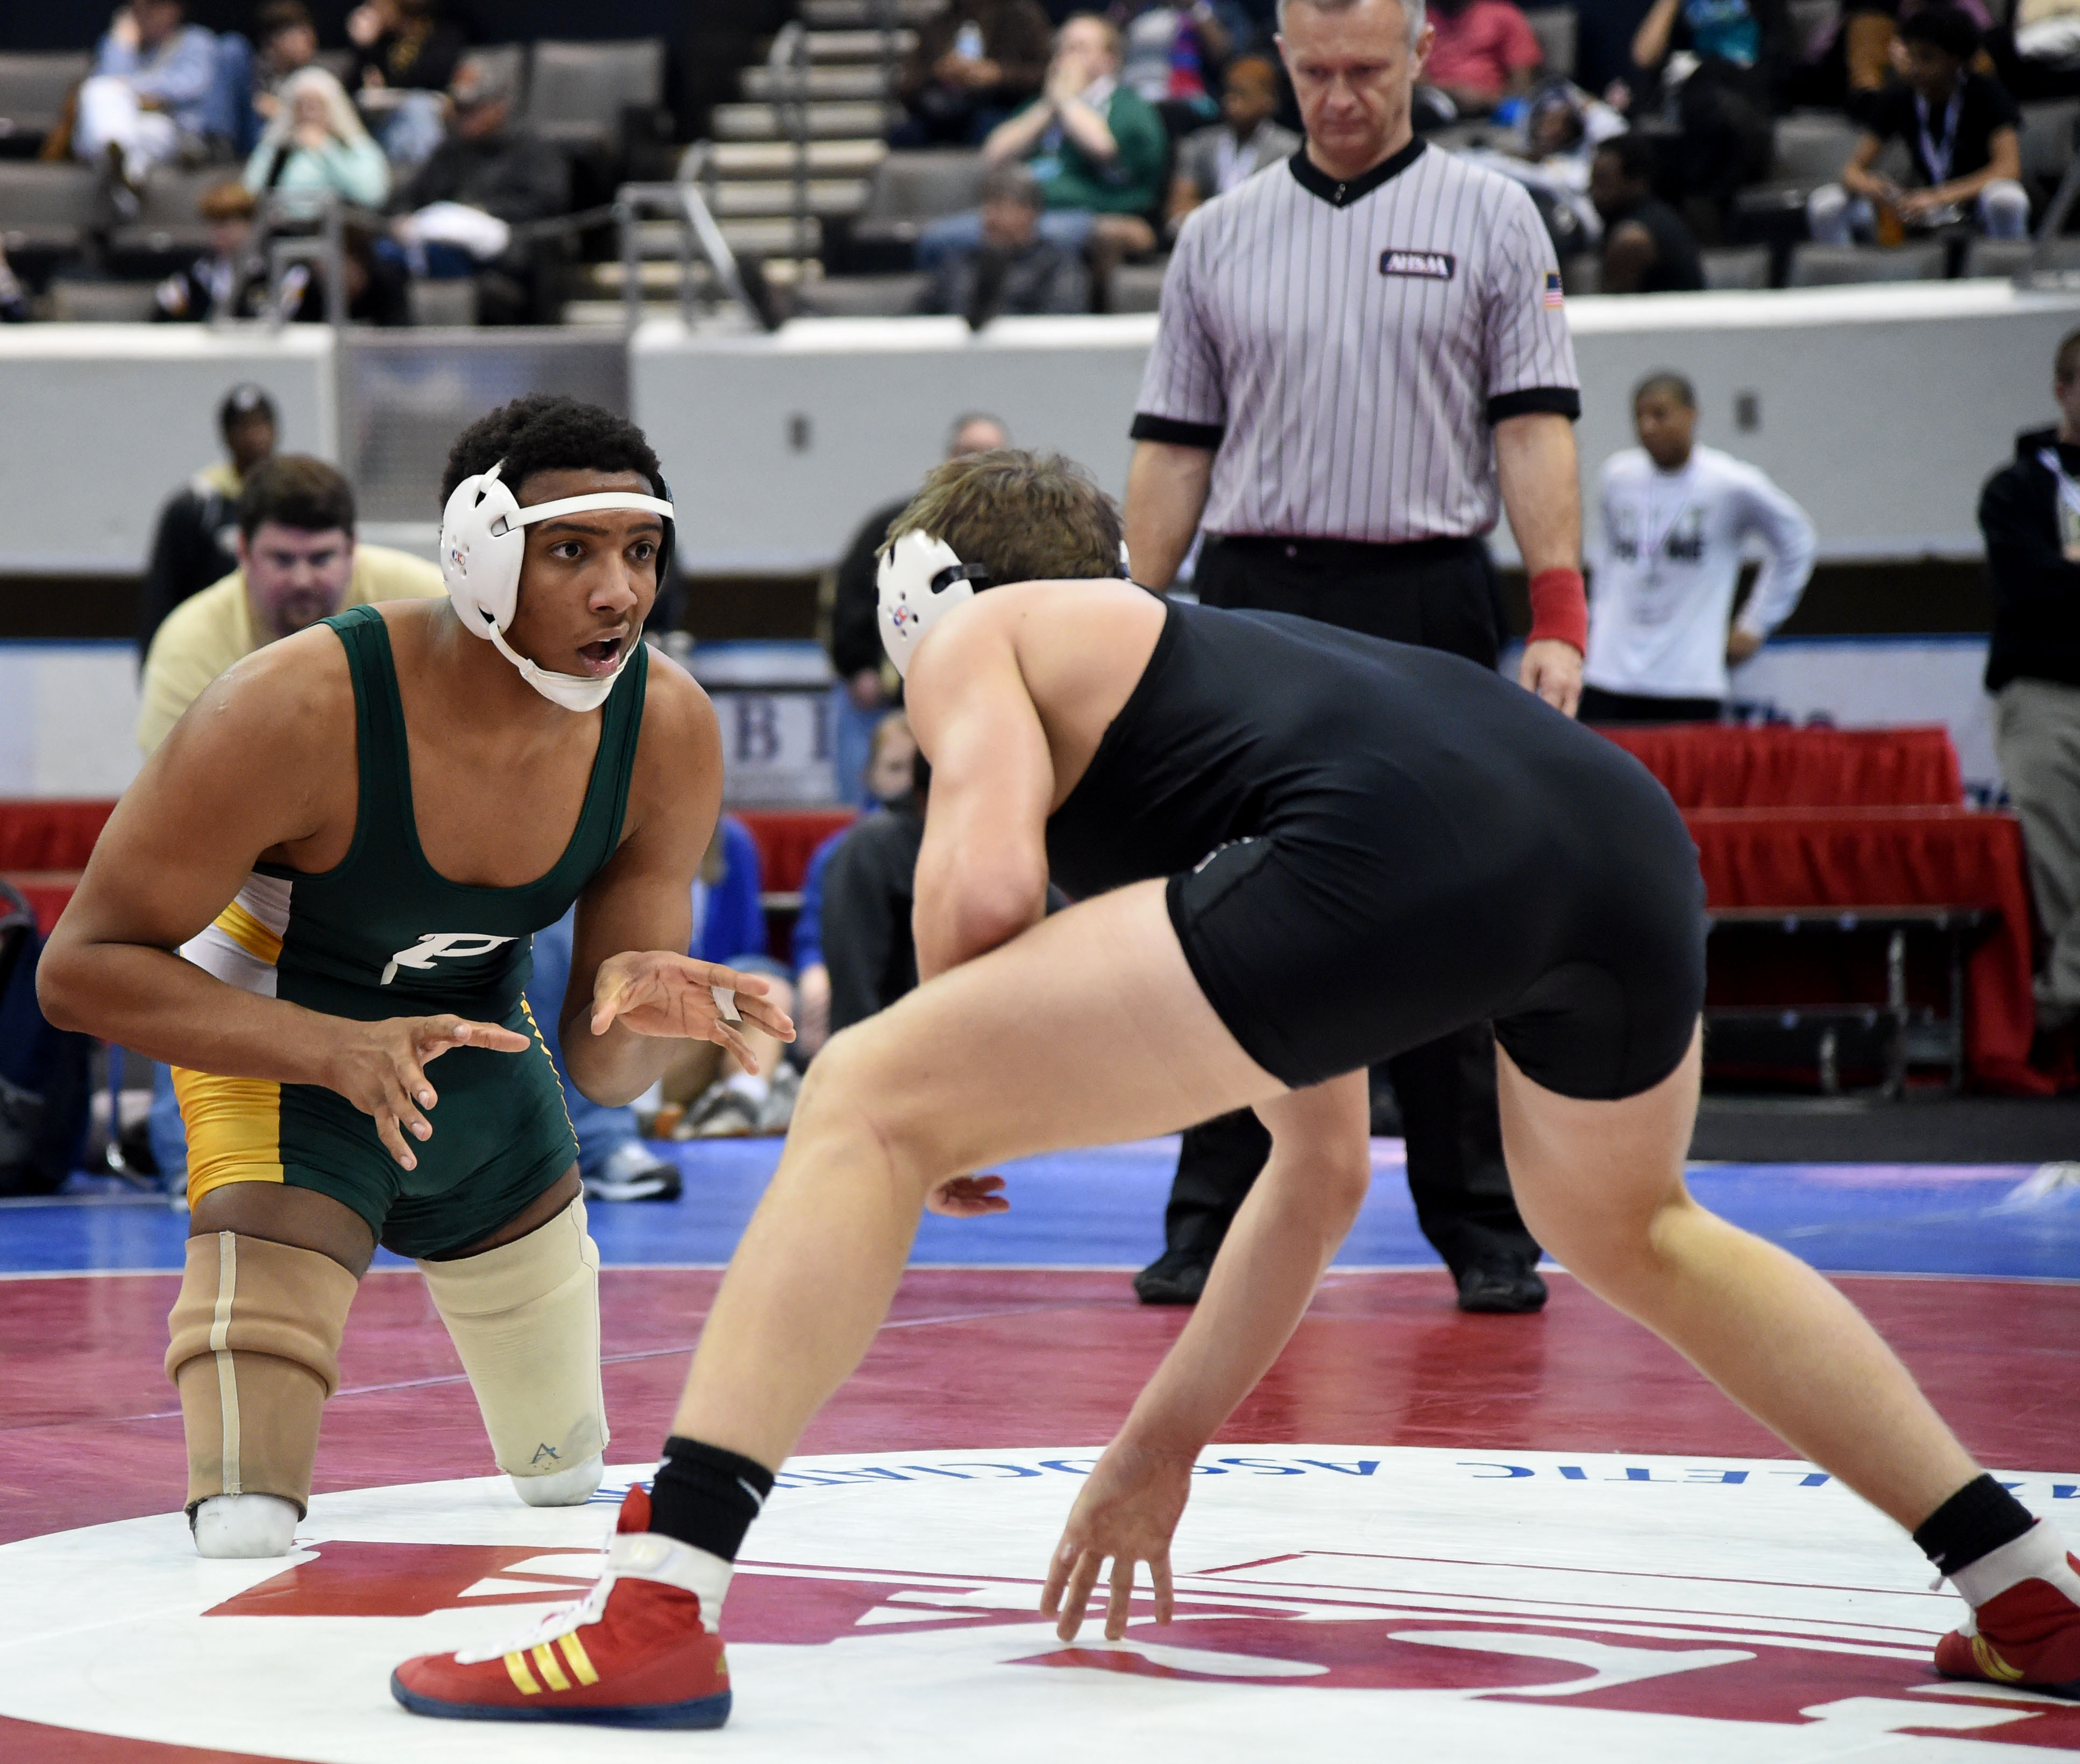 Hasaan Hawthorne, from Pelham High School, competes in the AHSAA State Wrestling Championships at the Von Braun Center in Huntsville, Ala., Feb. 12, 2015